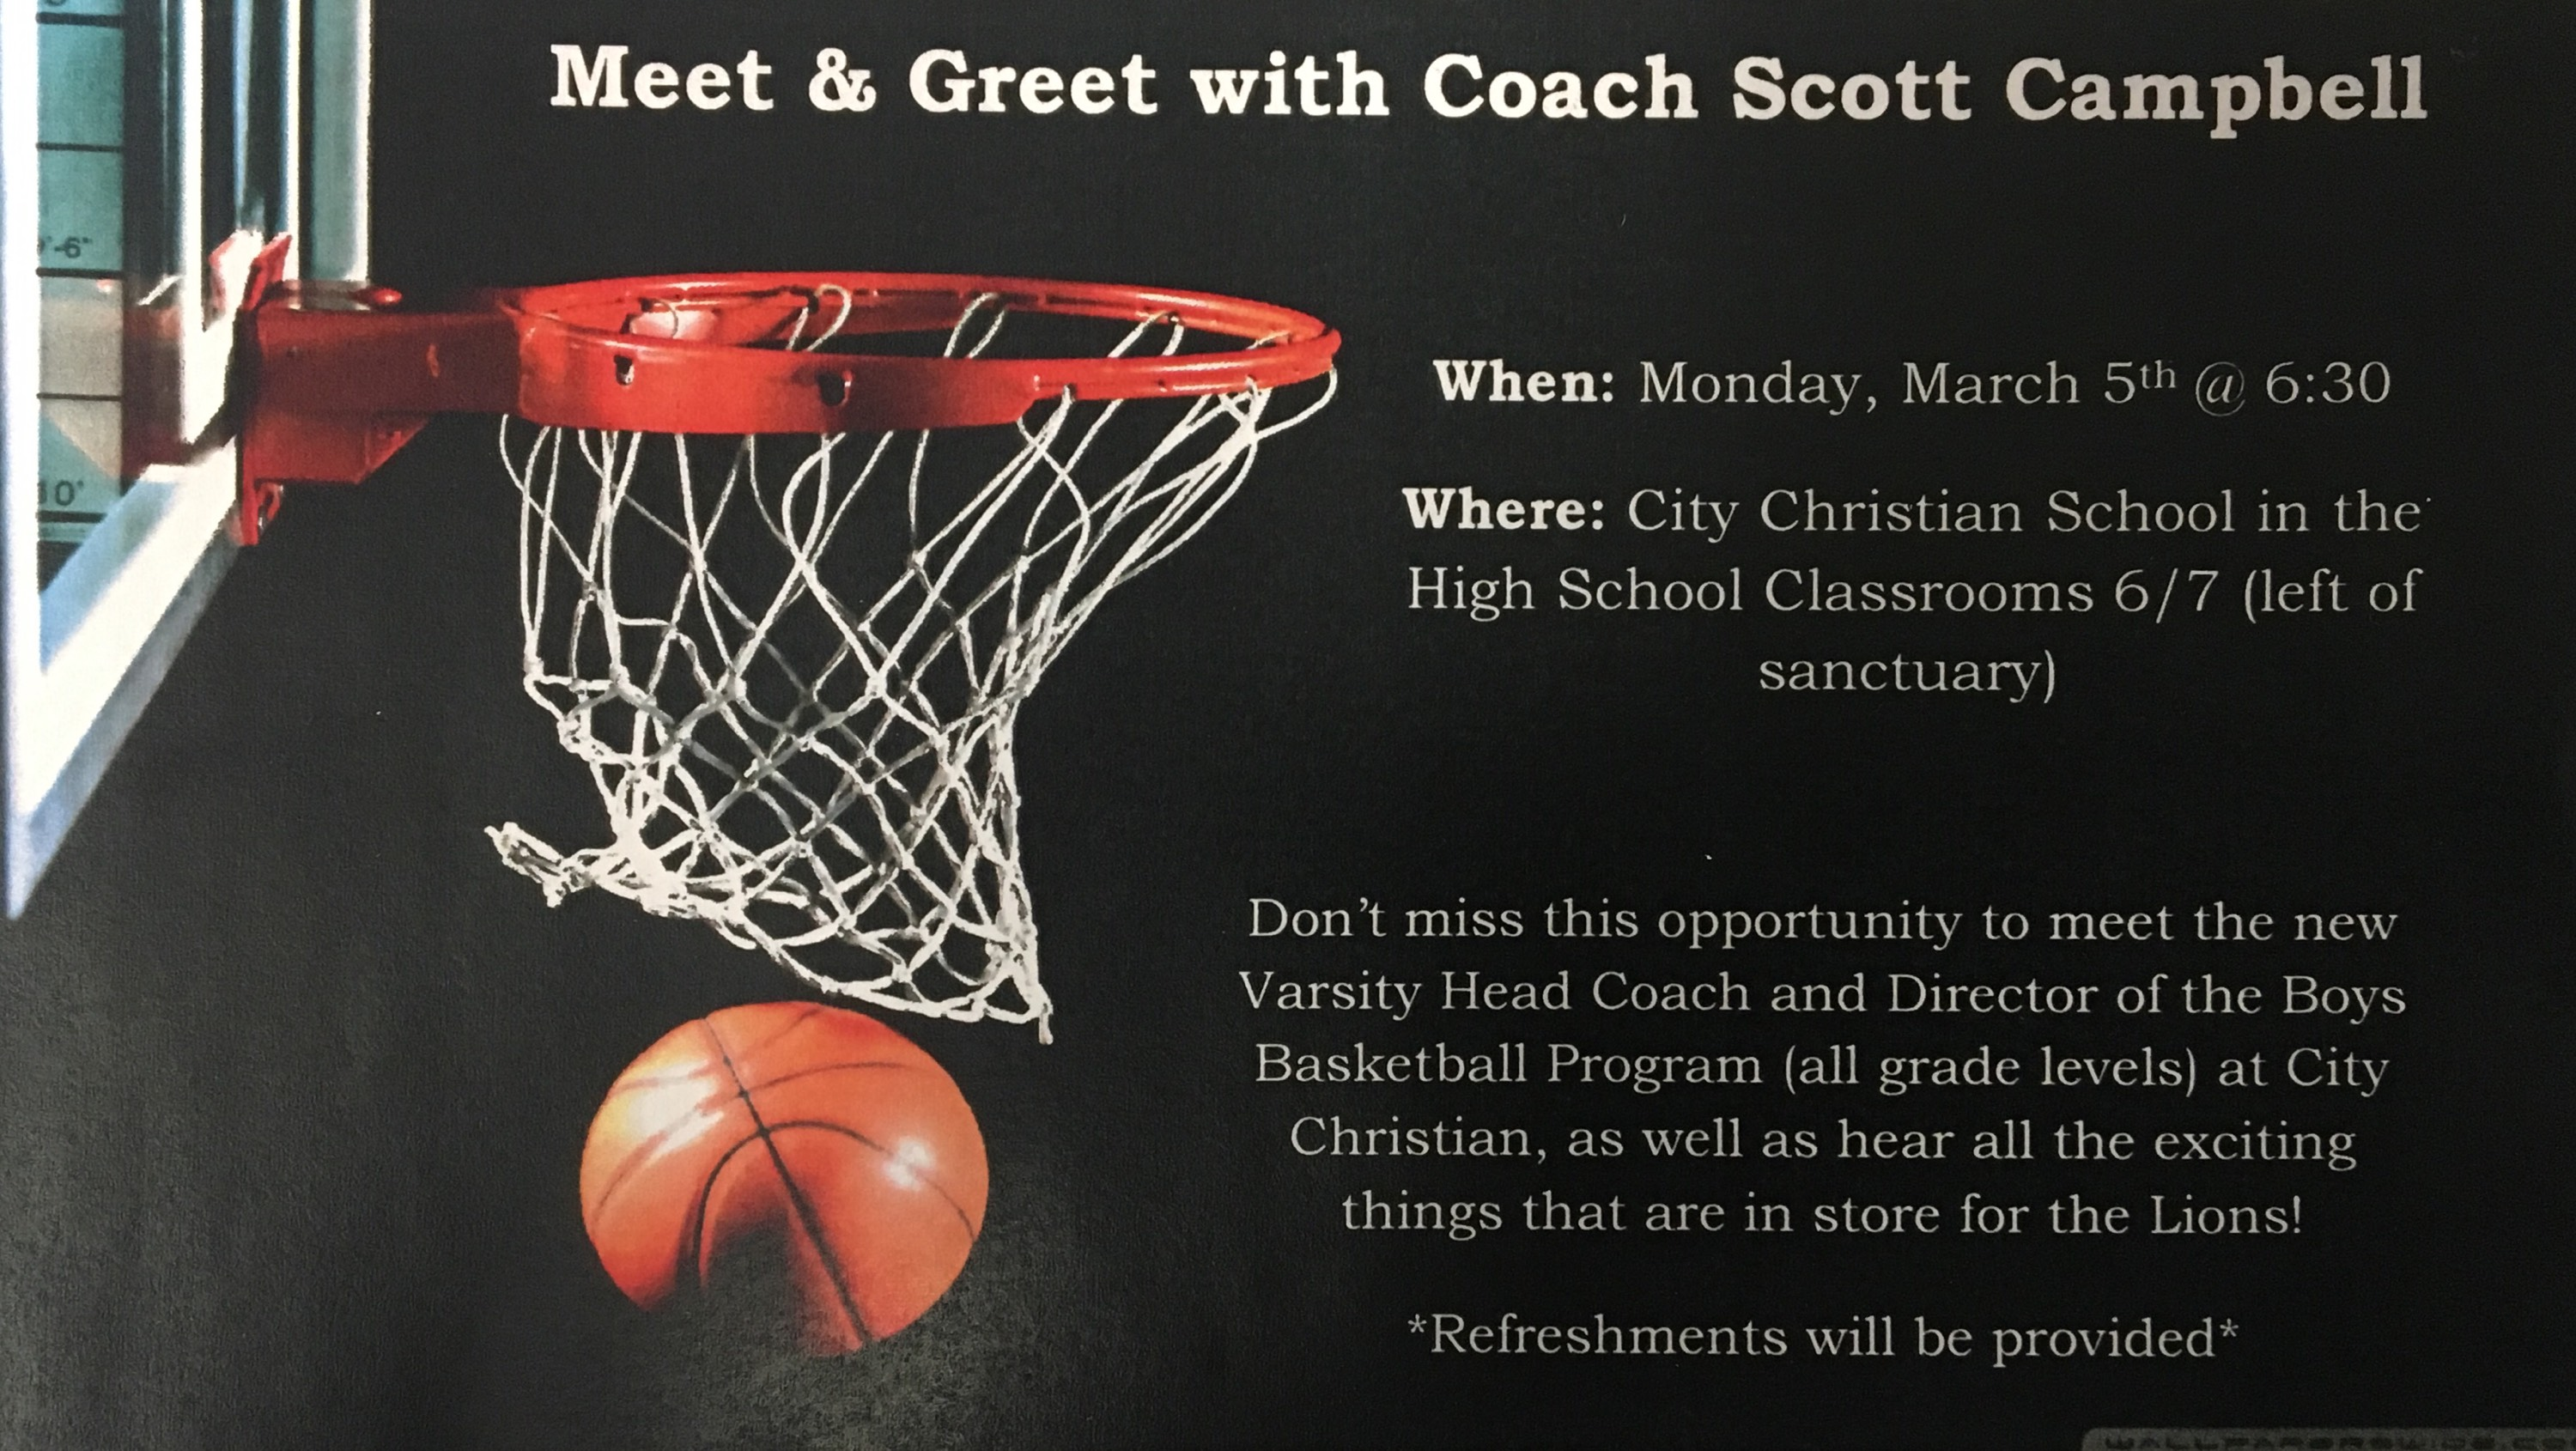 Meet & Greet with Coach Scott Campbell Monday March 5th @ 6:30